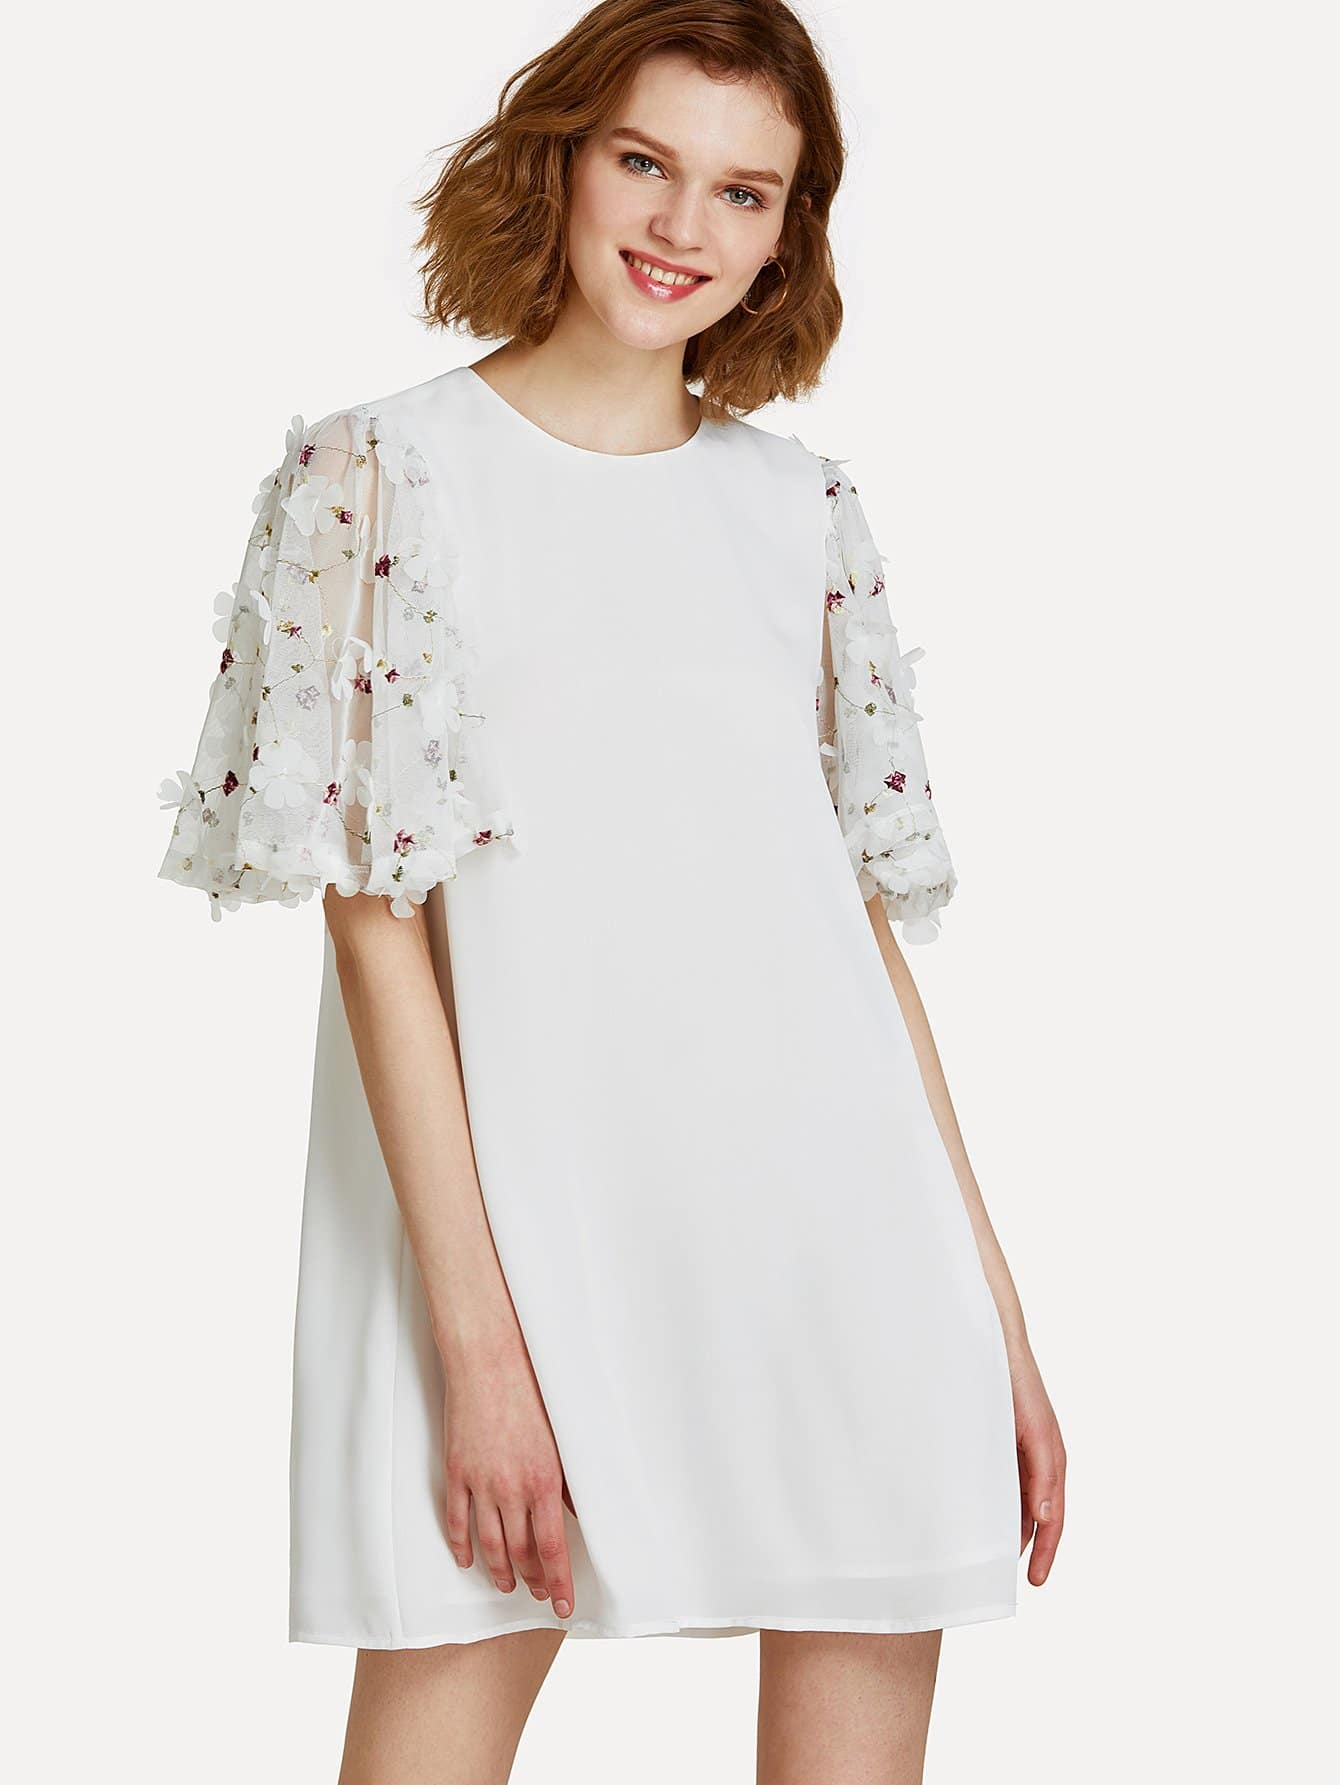 Applique Embroidery Flutter Sleeve Swing Dress embroidery applique knot back fitted